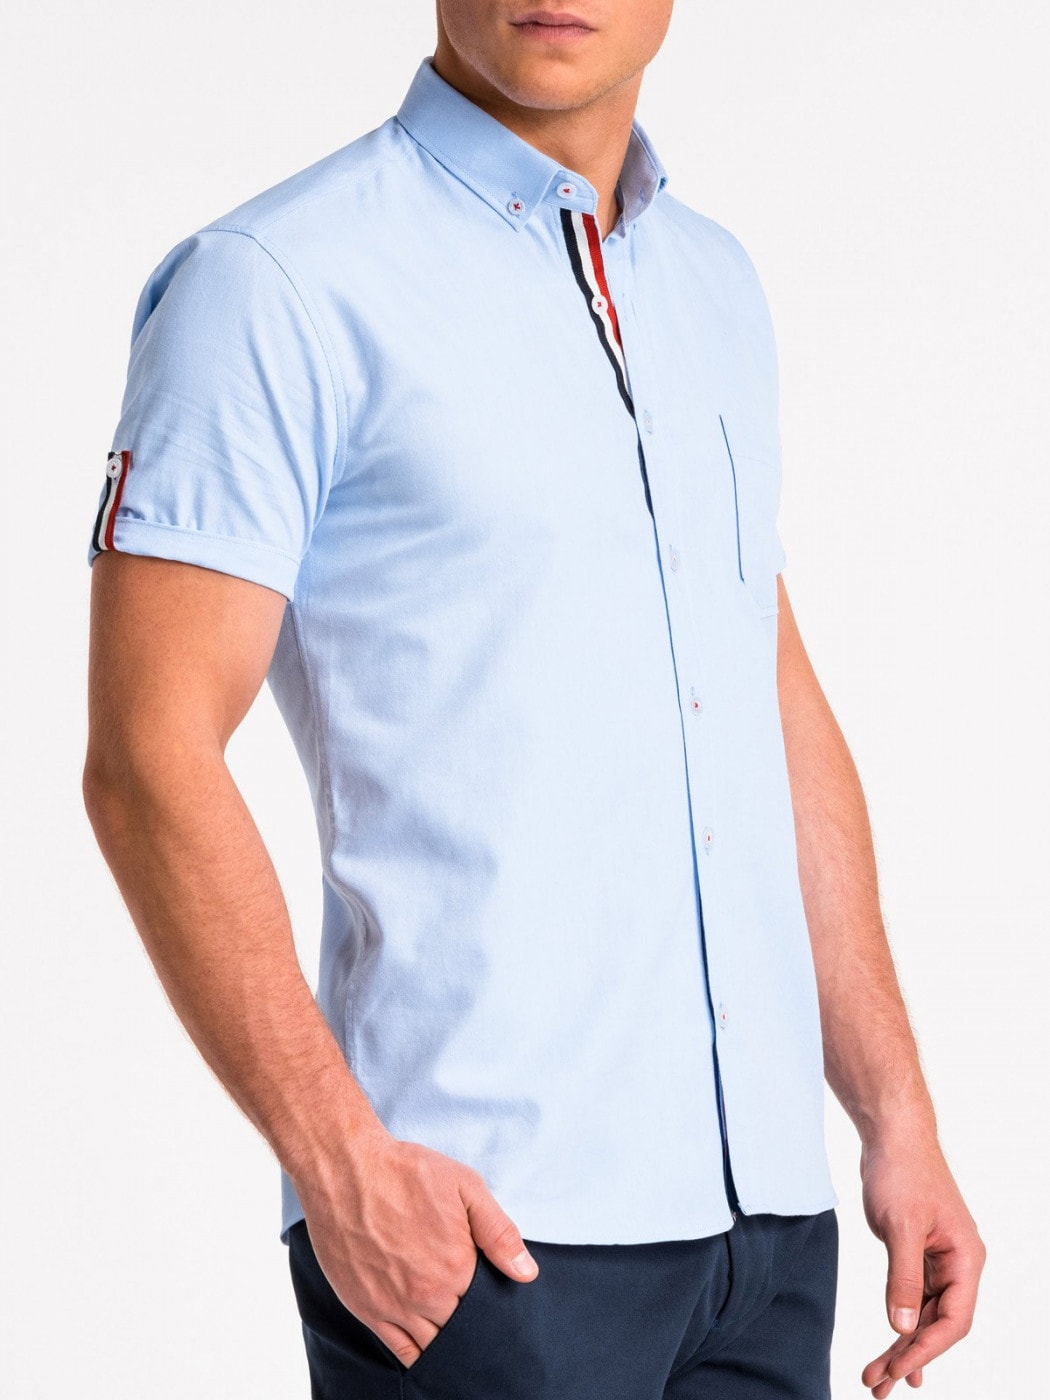 Men's Shirt Ombre K489